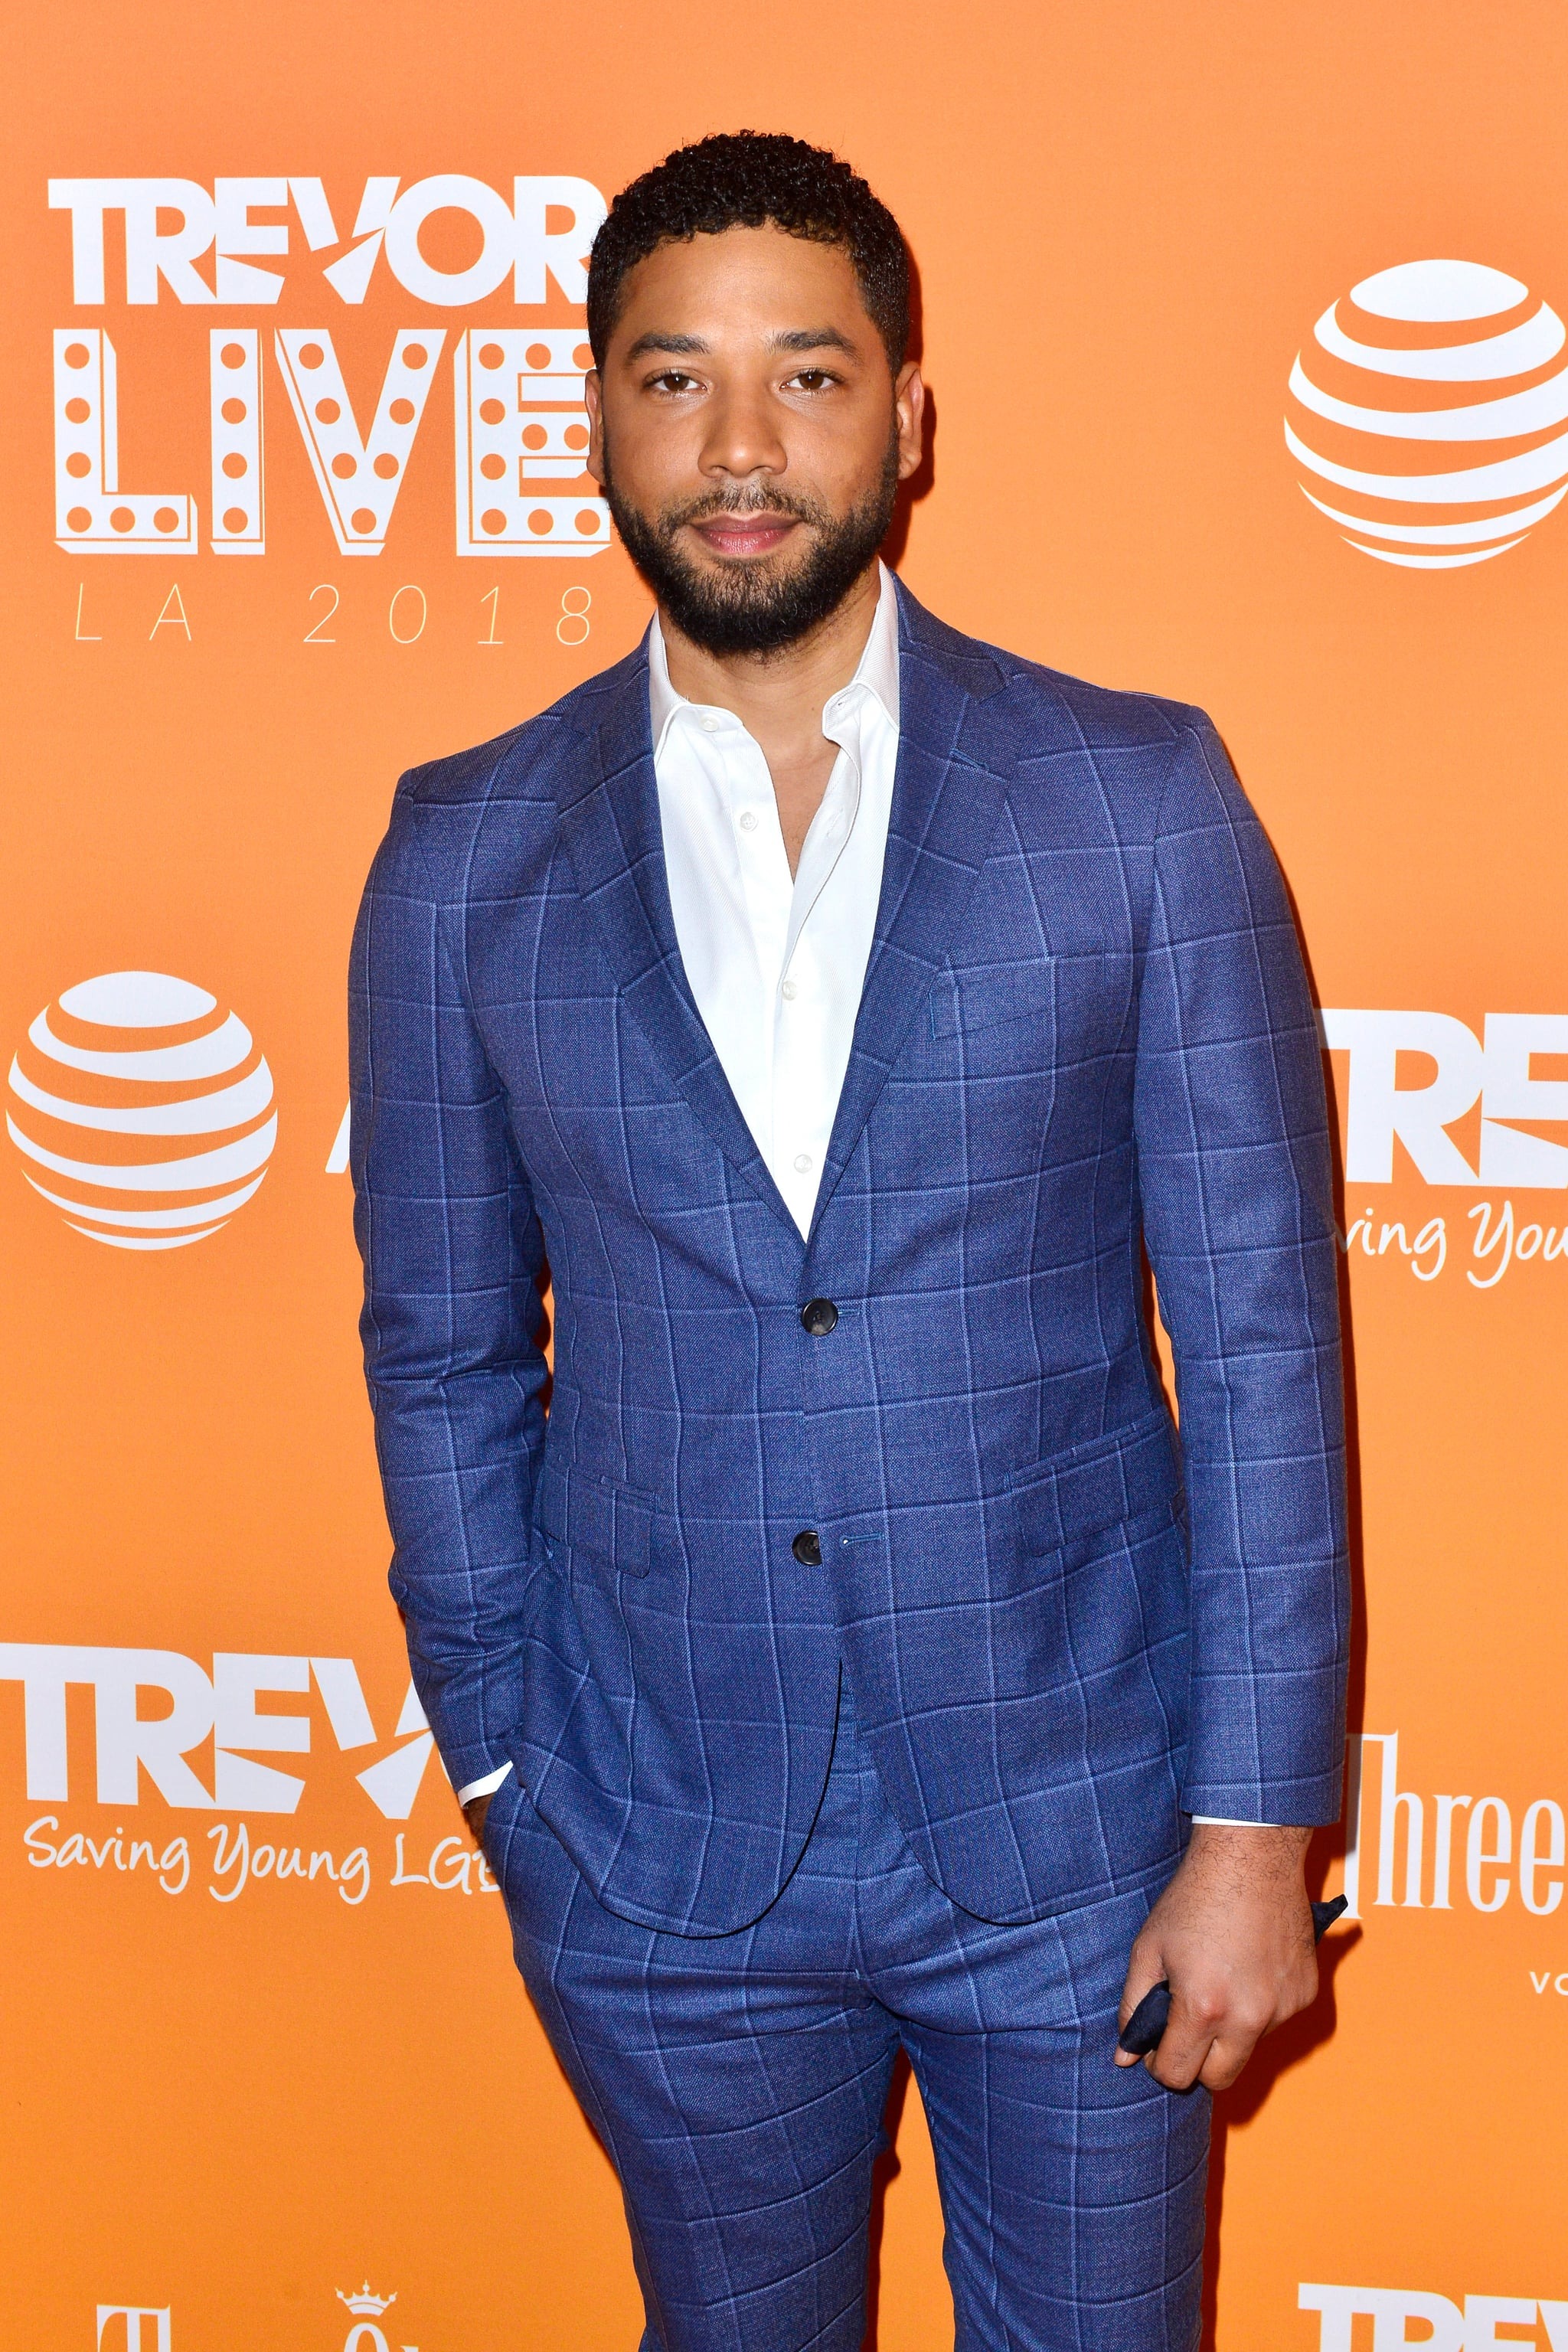 BEVERLY HILLS, CA - DECEMBER 02:  Jussie Smollett attends the Trevor Project's TrevorLIVE LA 2018 at The Beverly Hilton Hotel on December 3, 2018 in Beverly Hills, California.  (Photo by Jerod Harris/Getty Images for The Trevor Project)